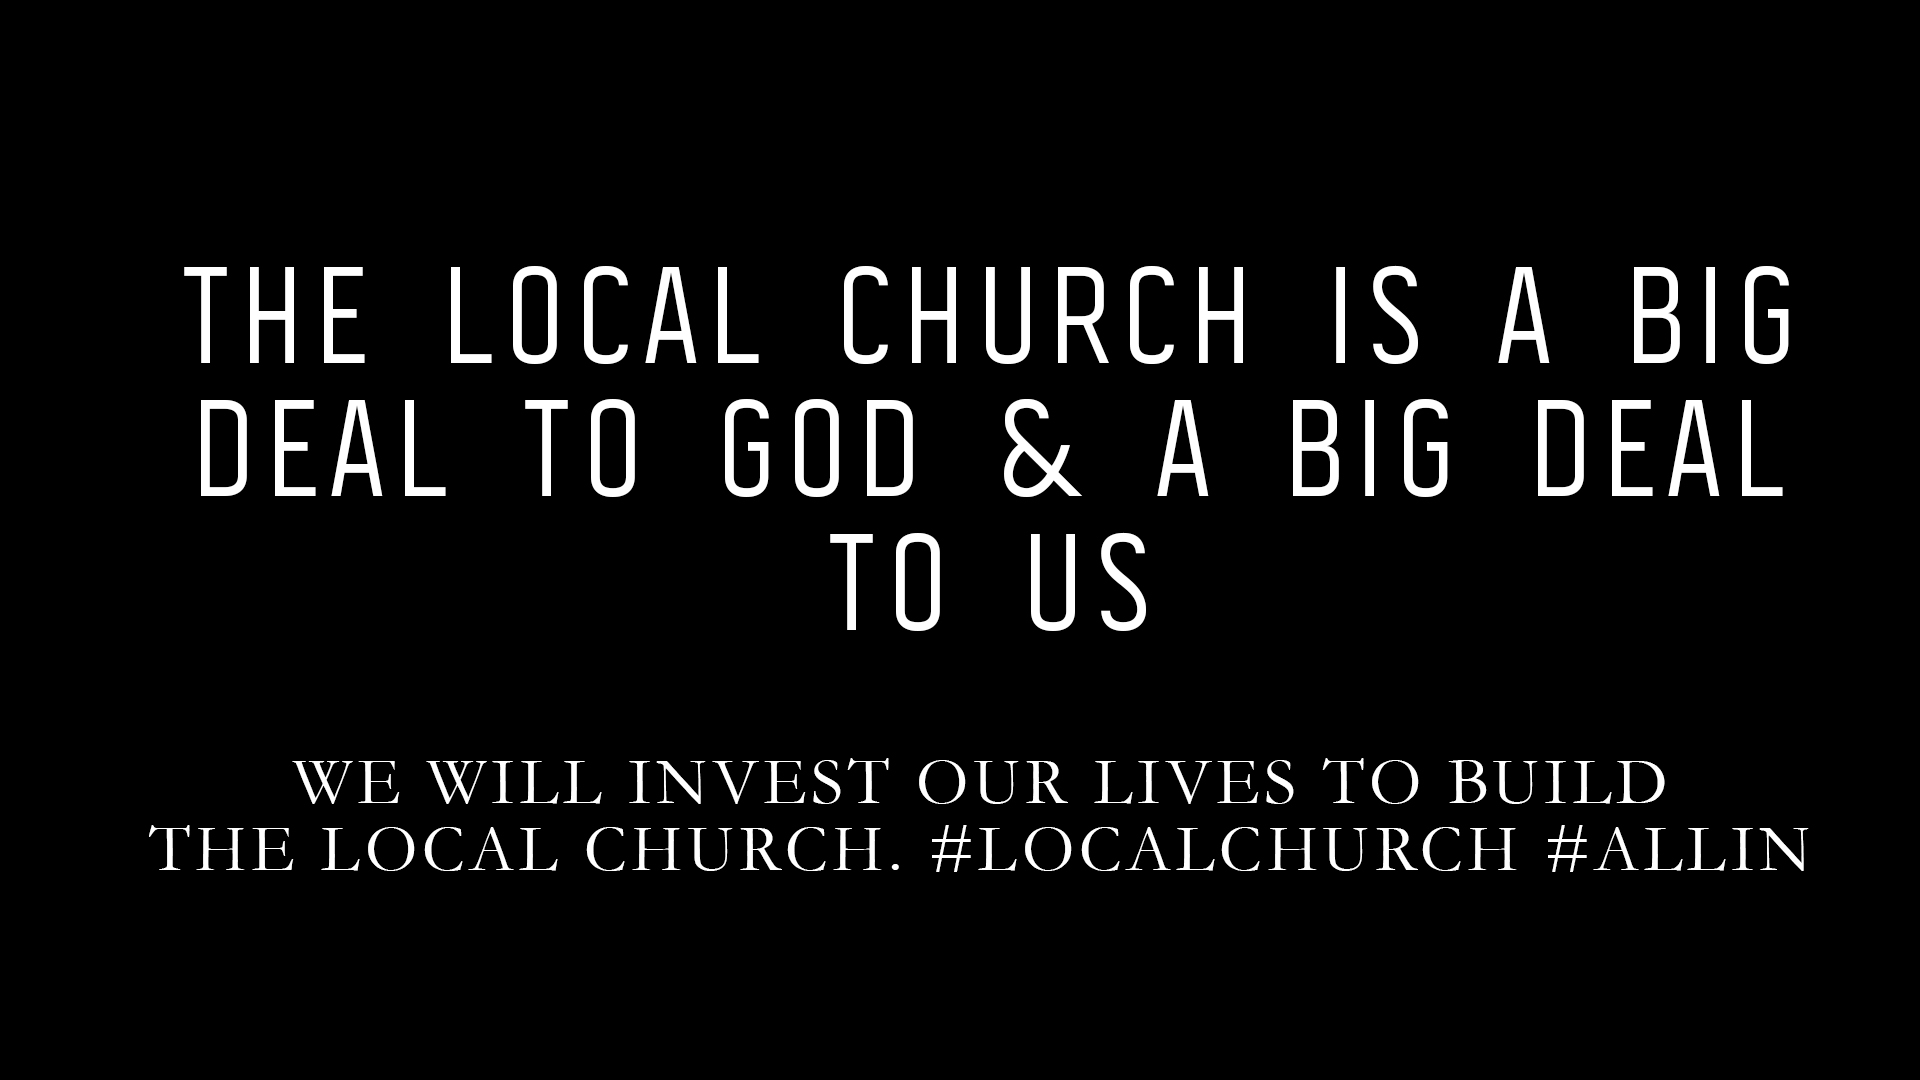 WE WILL INVEST OUR LIVES TO BUILD THE LOCAL CHURCH.    #LOCALCHURCH #ALLIN